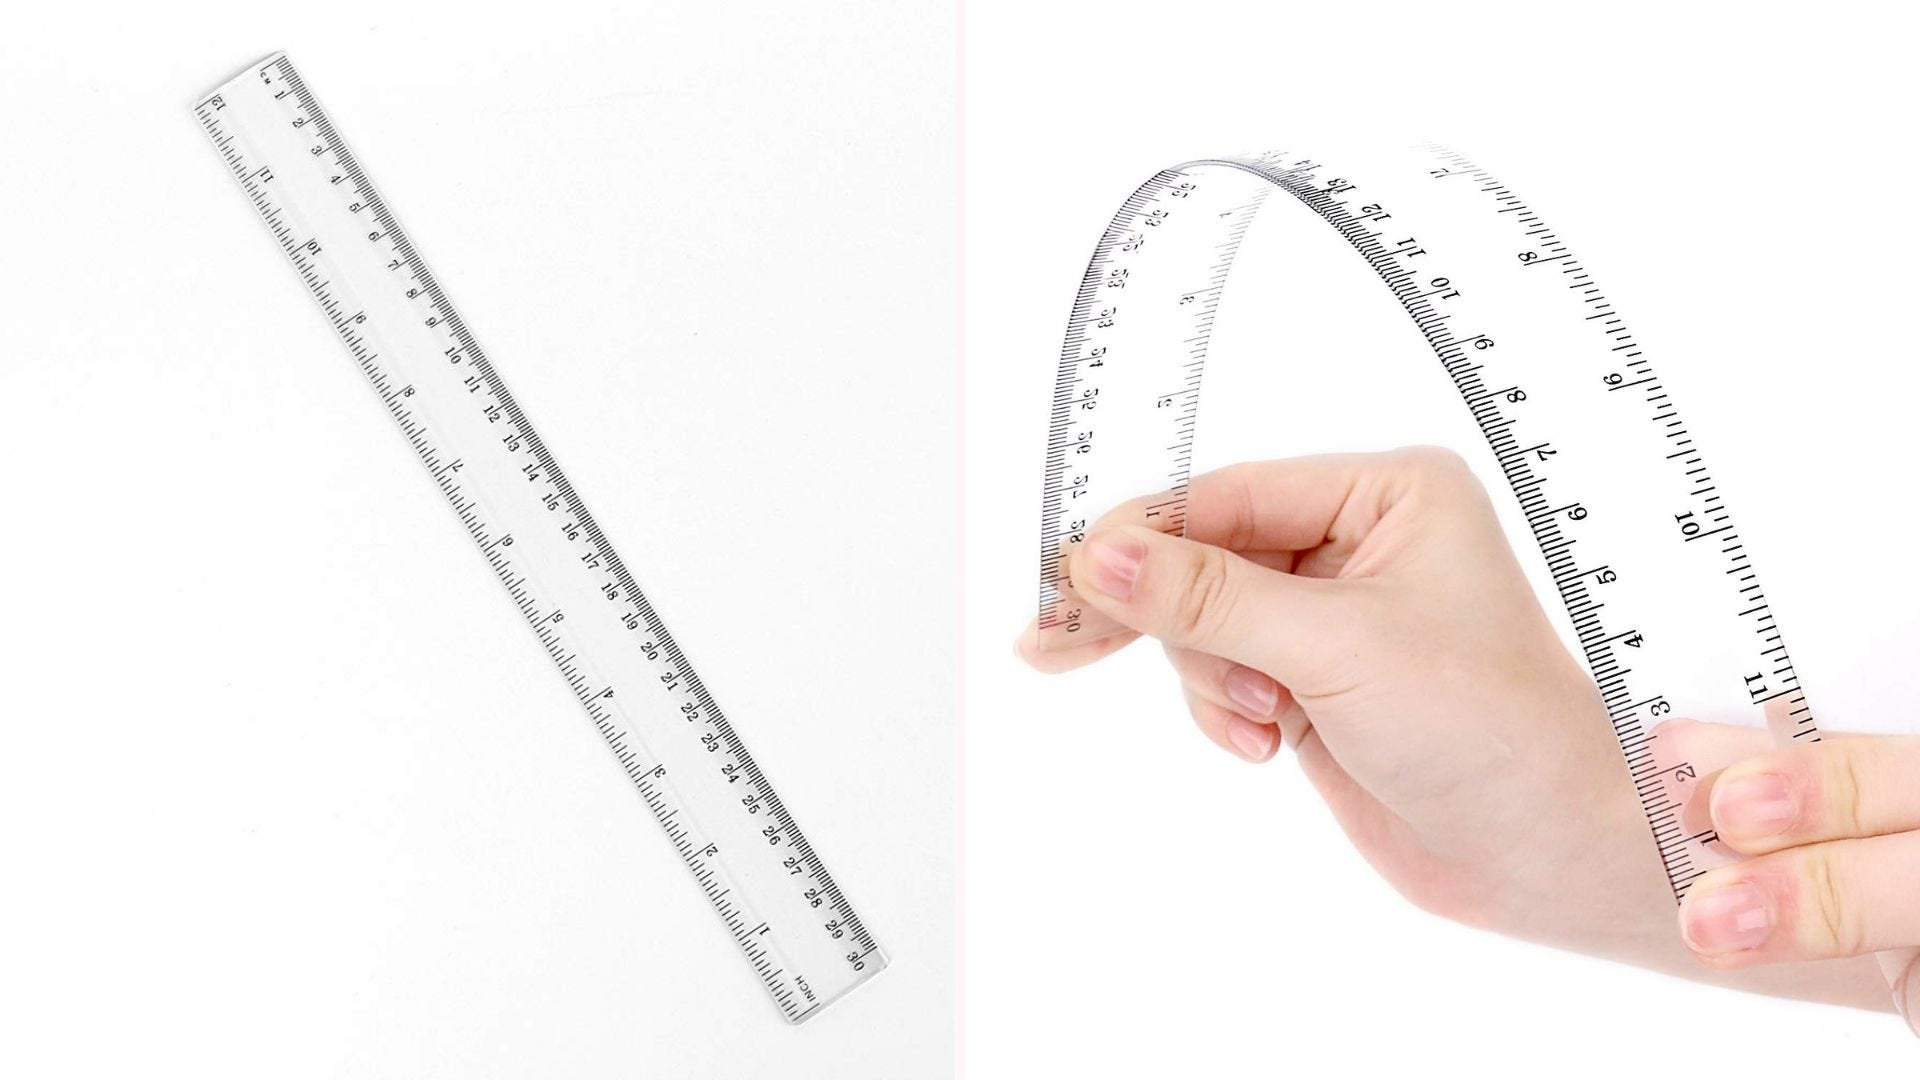 dual view straight clear ruler and person bending the ruler